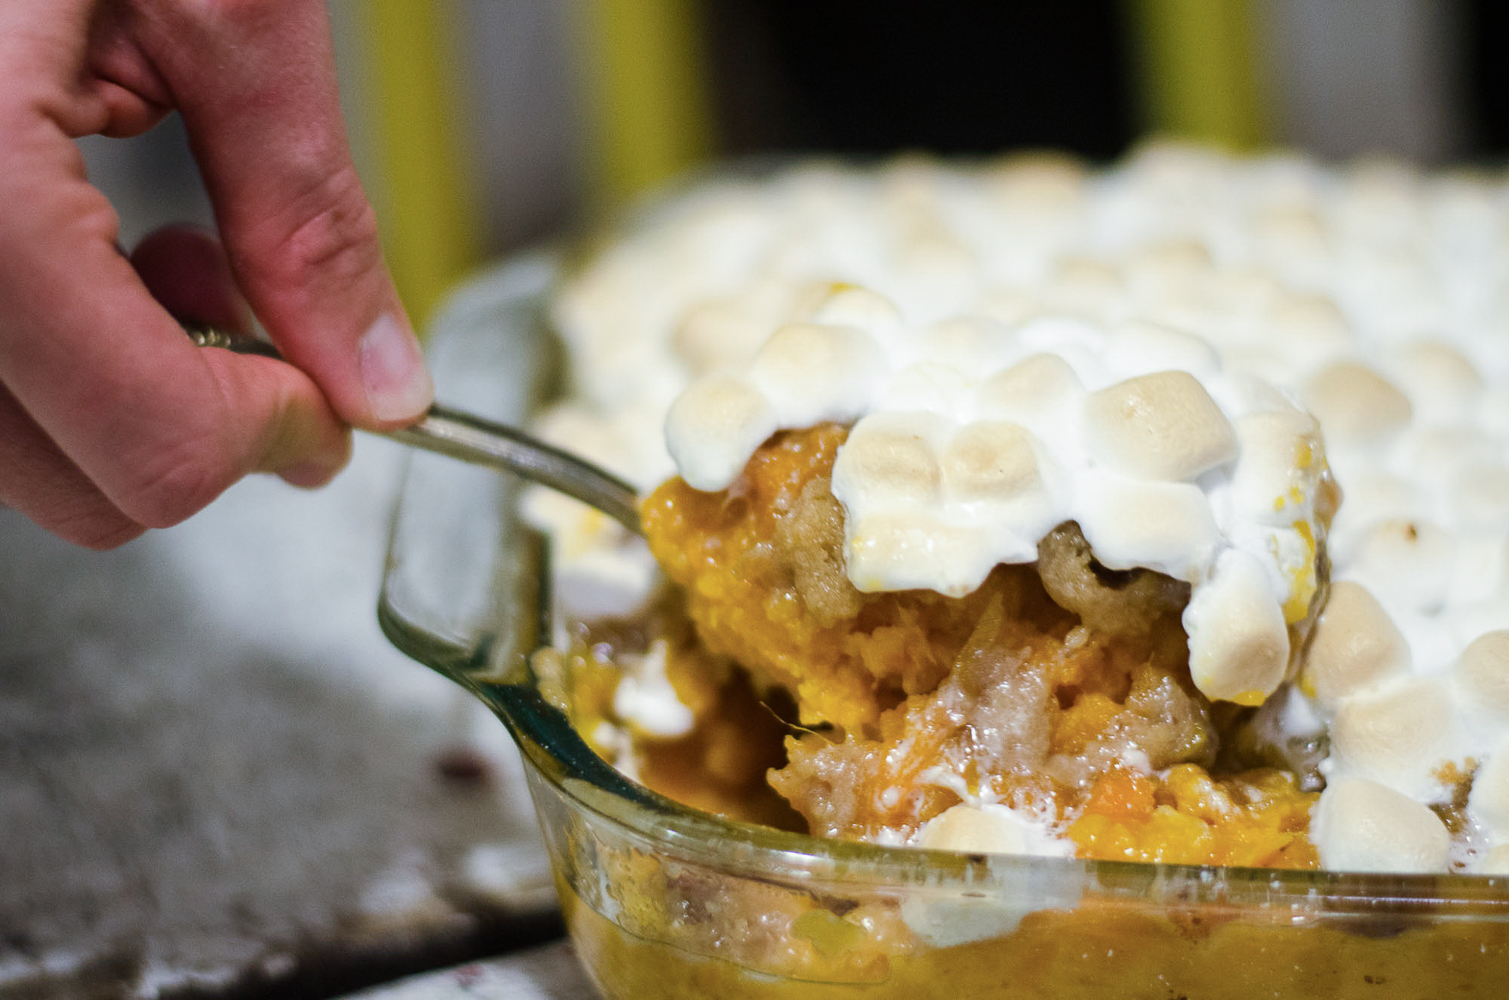 The Kentucky Gent, a Louisville, Kentucky life and style blogger, shares his Candied Pecan Sweet Potato Casserole recipe.